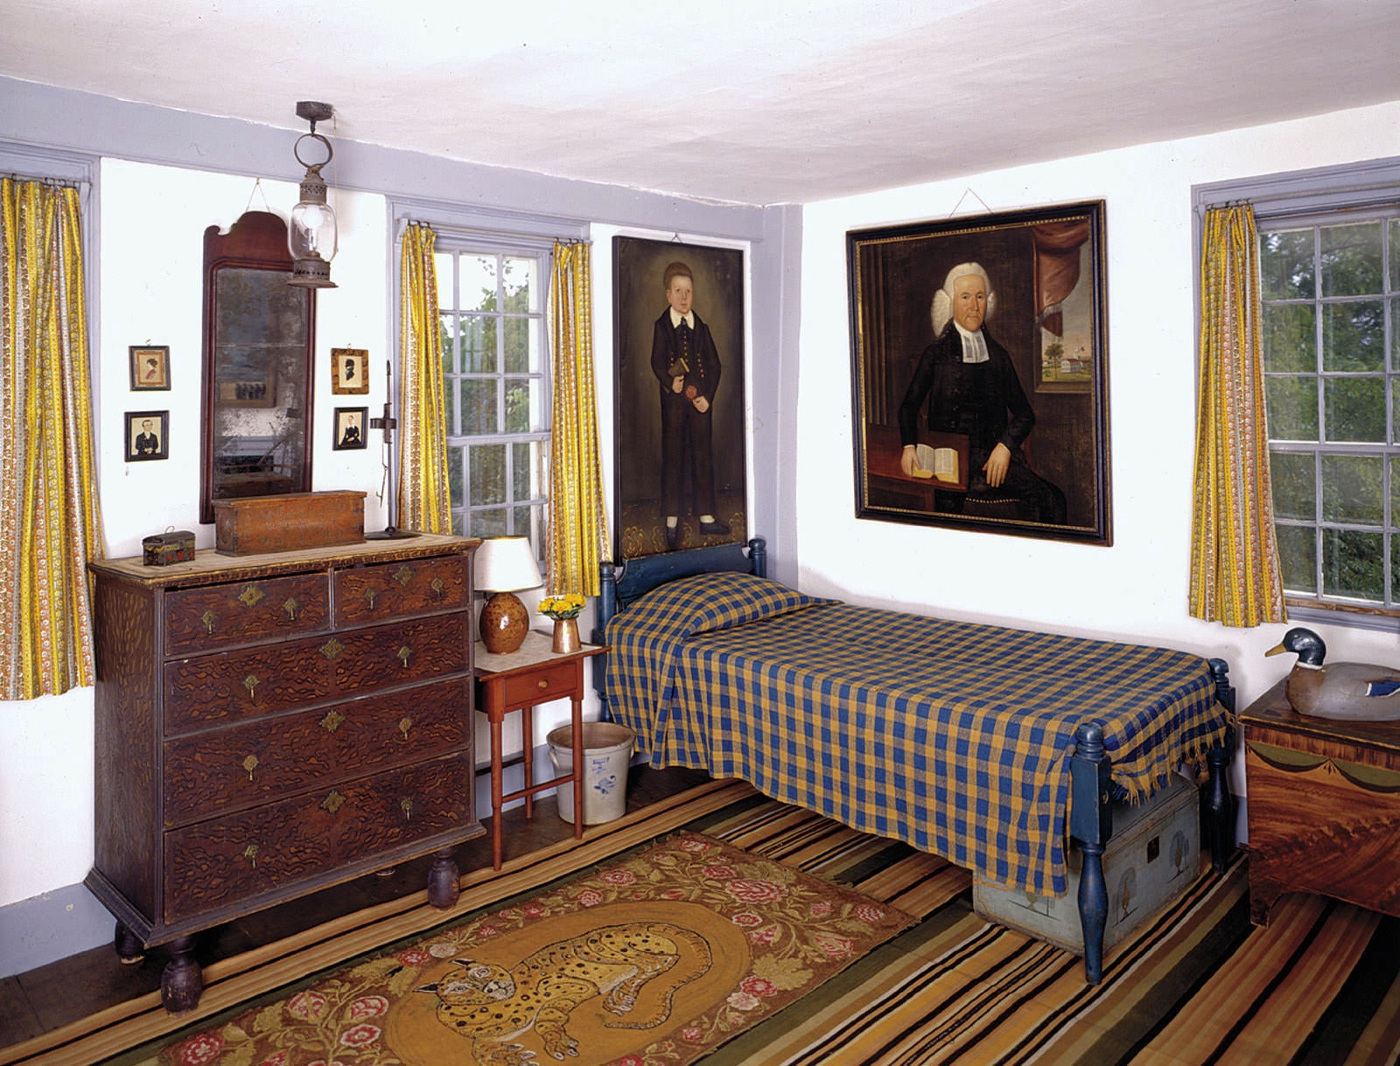 Cogswell's Grant, An Historic New England Property, Offers